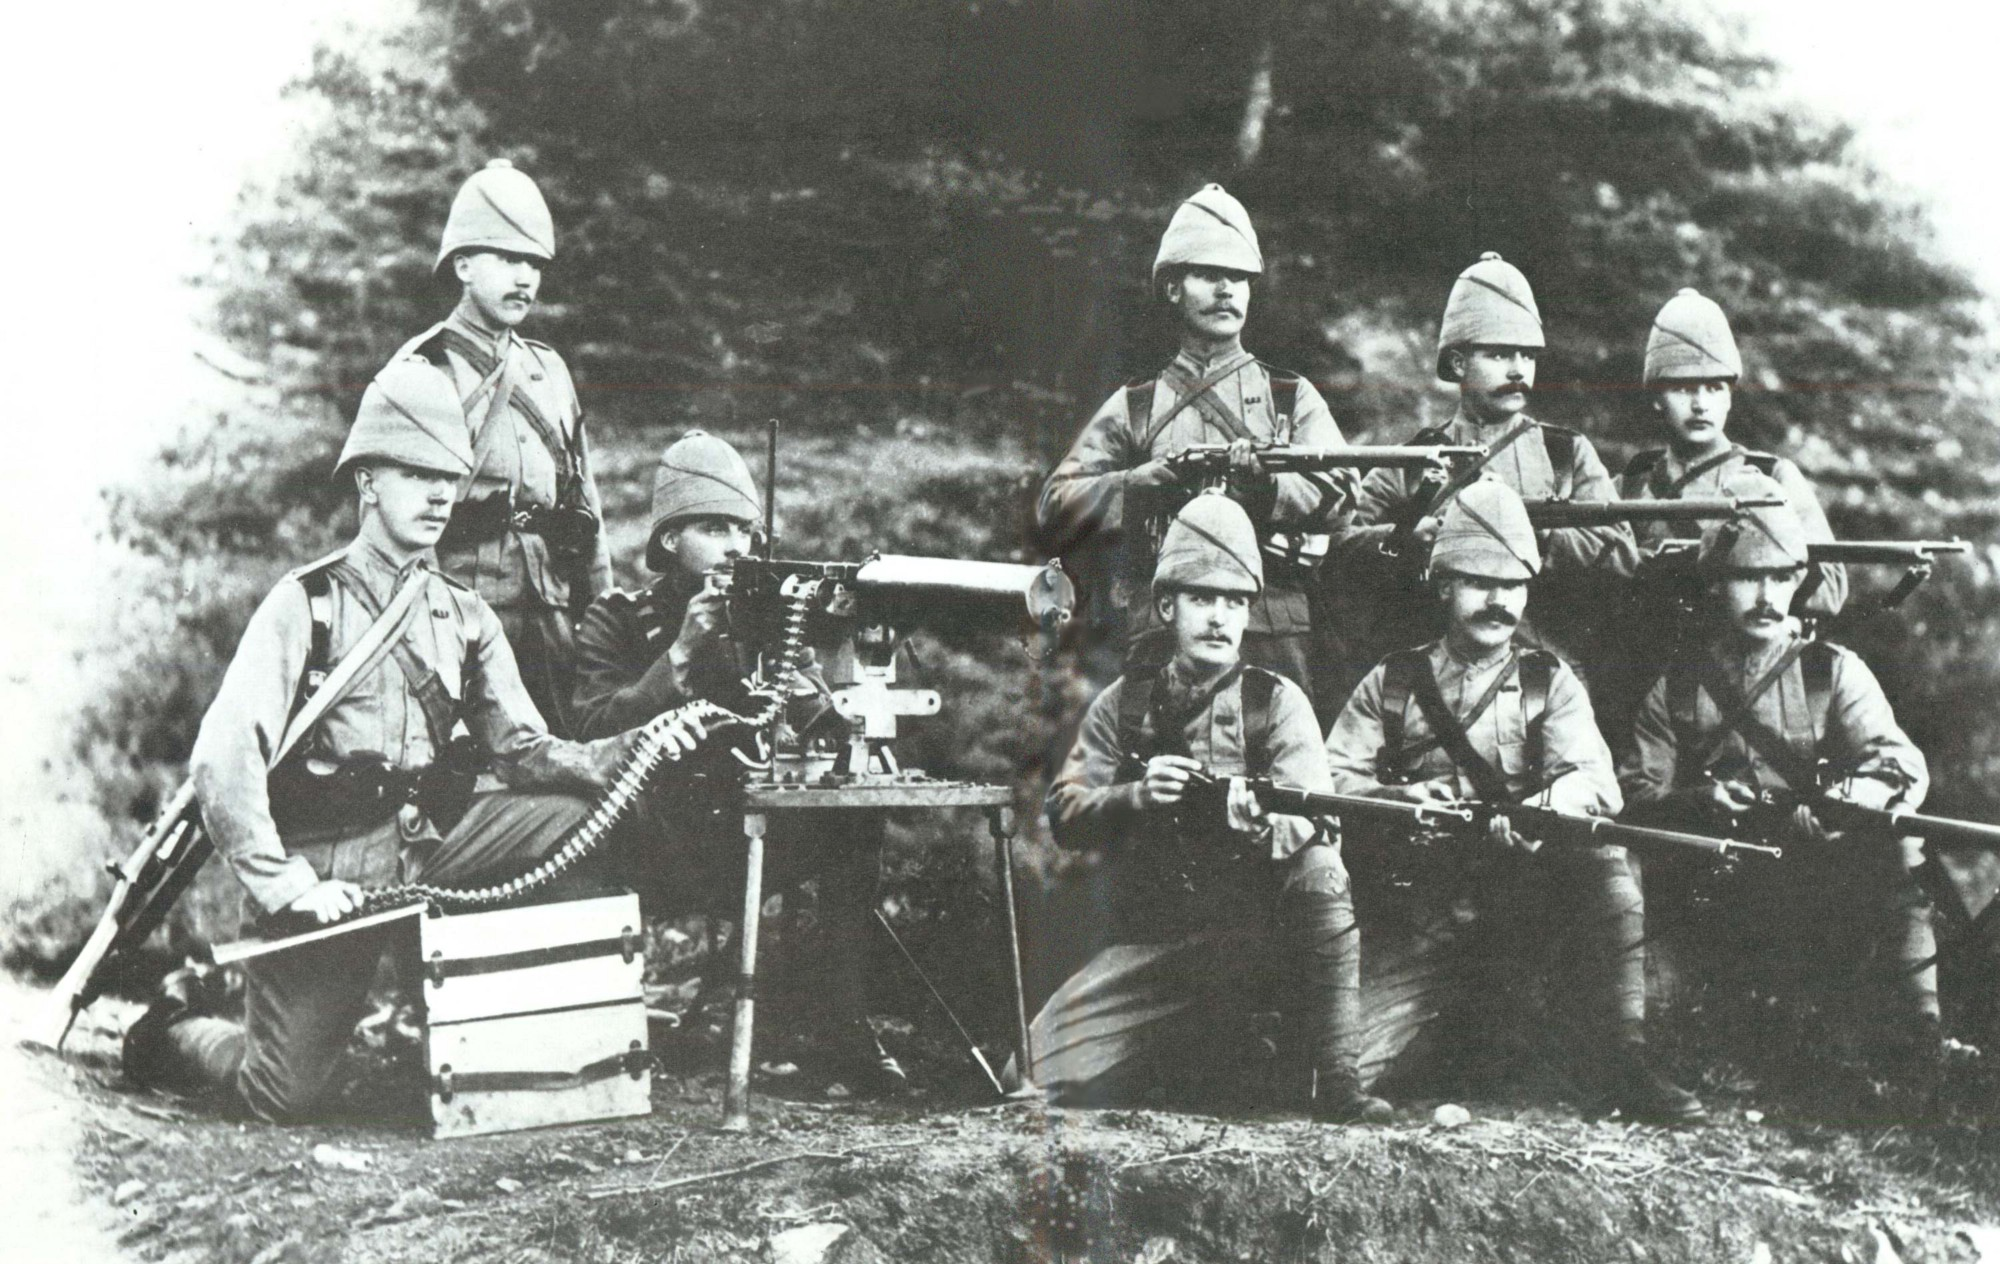 British Maxim gun section, Chitral Expedition, Pakistan, 1895.